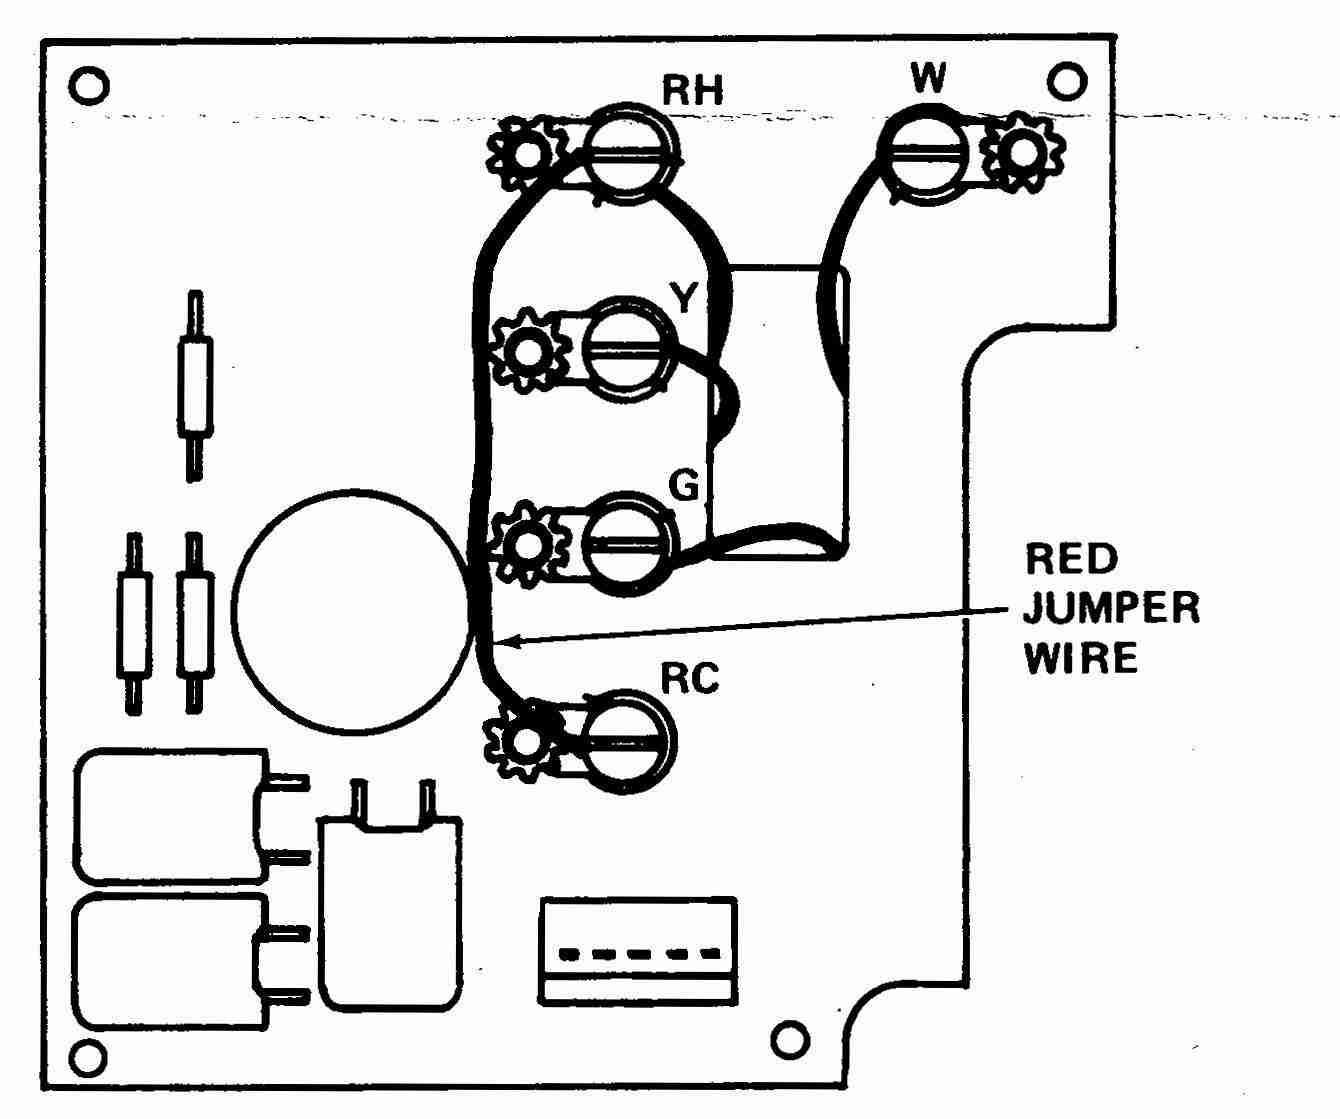 Thermostat A Honeywell For Diagram Wiring Apgf030ko80